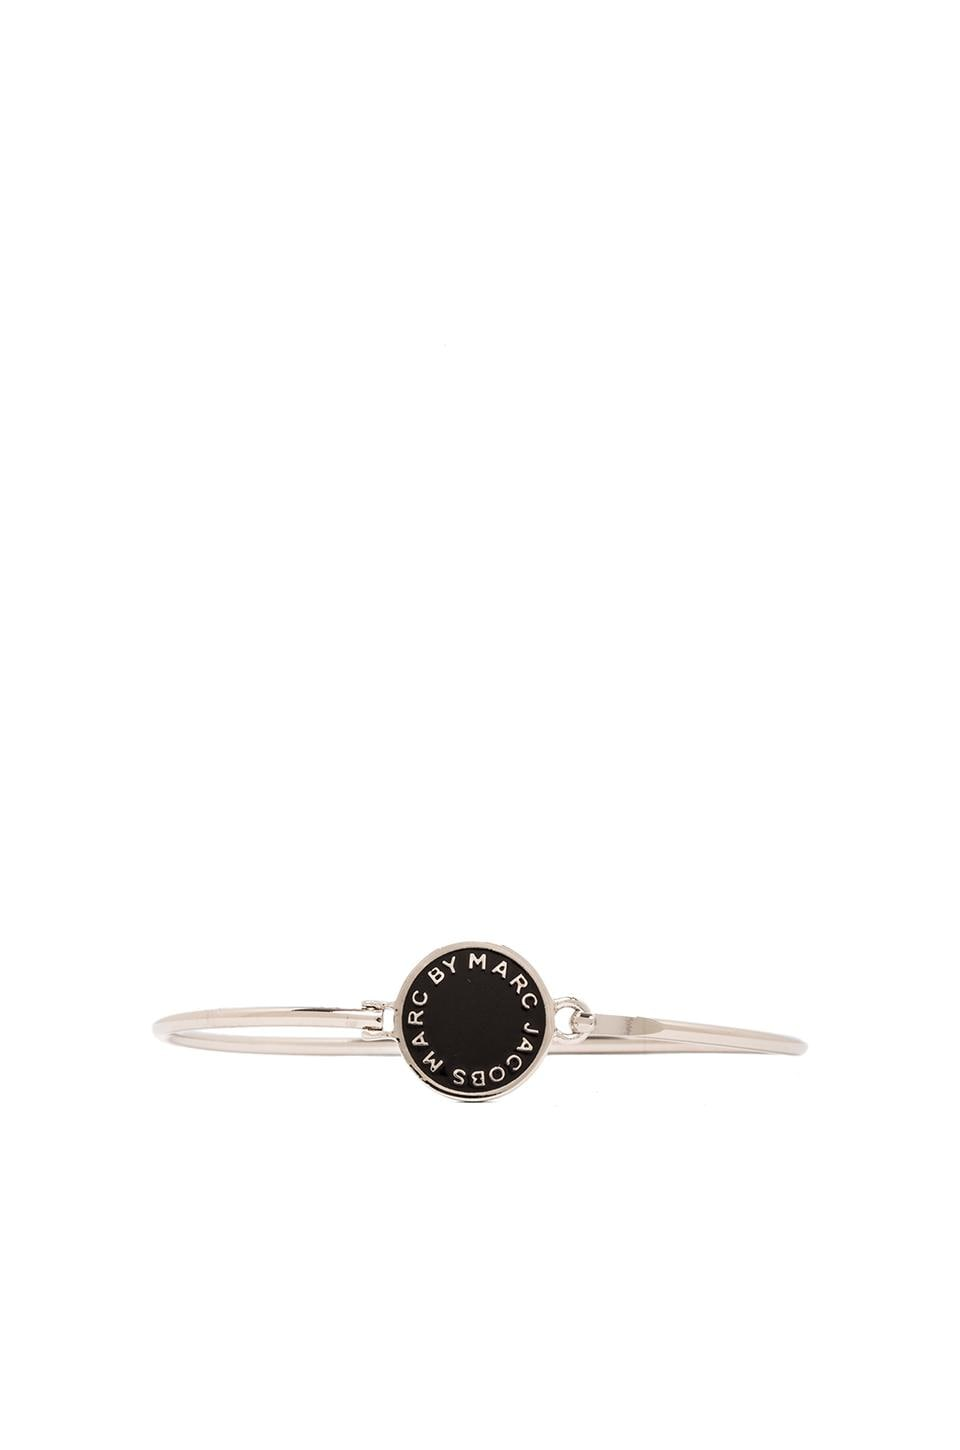 Marc by Marc Jacobs Skinny Bracelet in Black